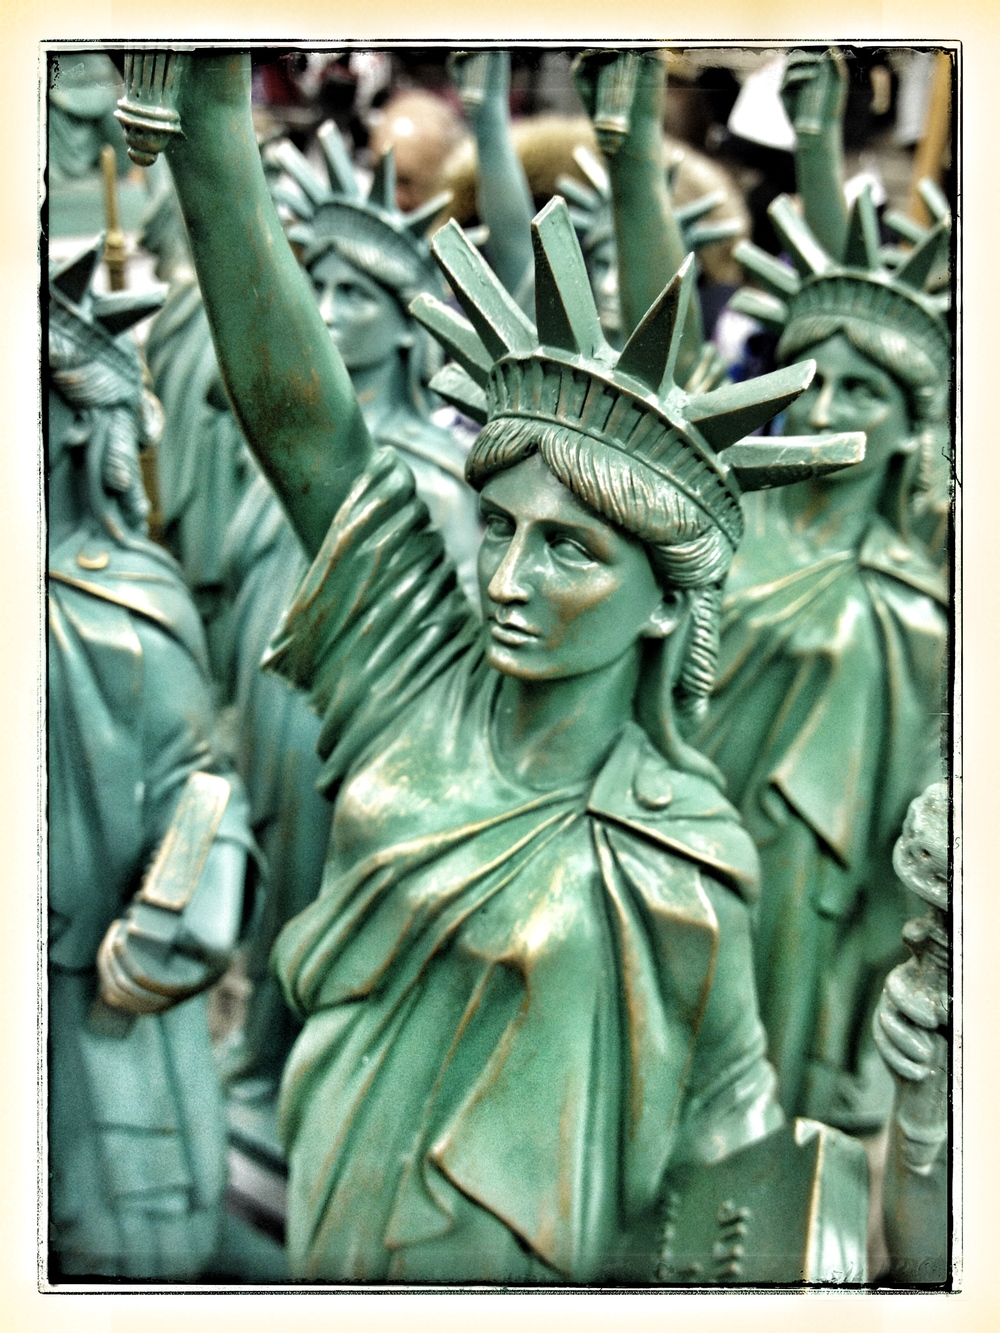 STATUES OF LIBERTY.jpg